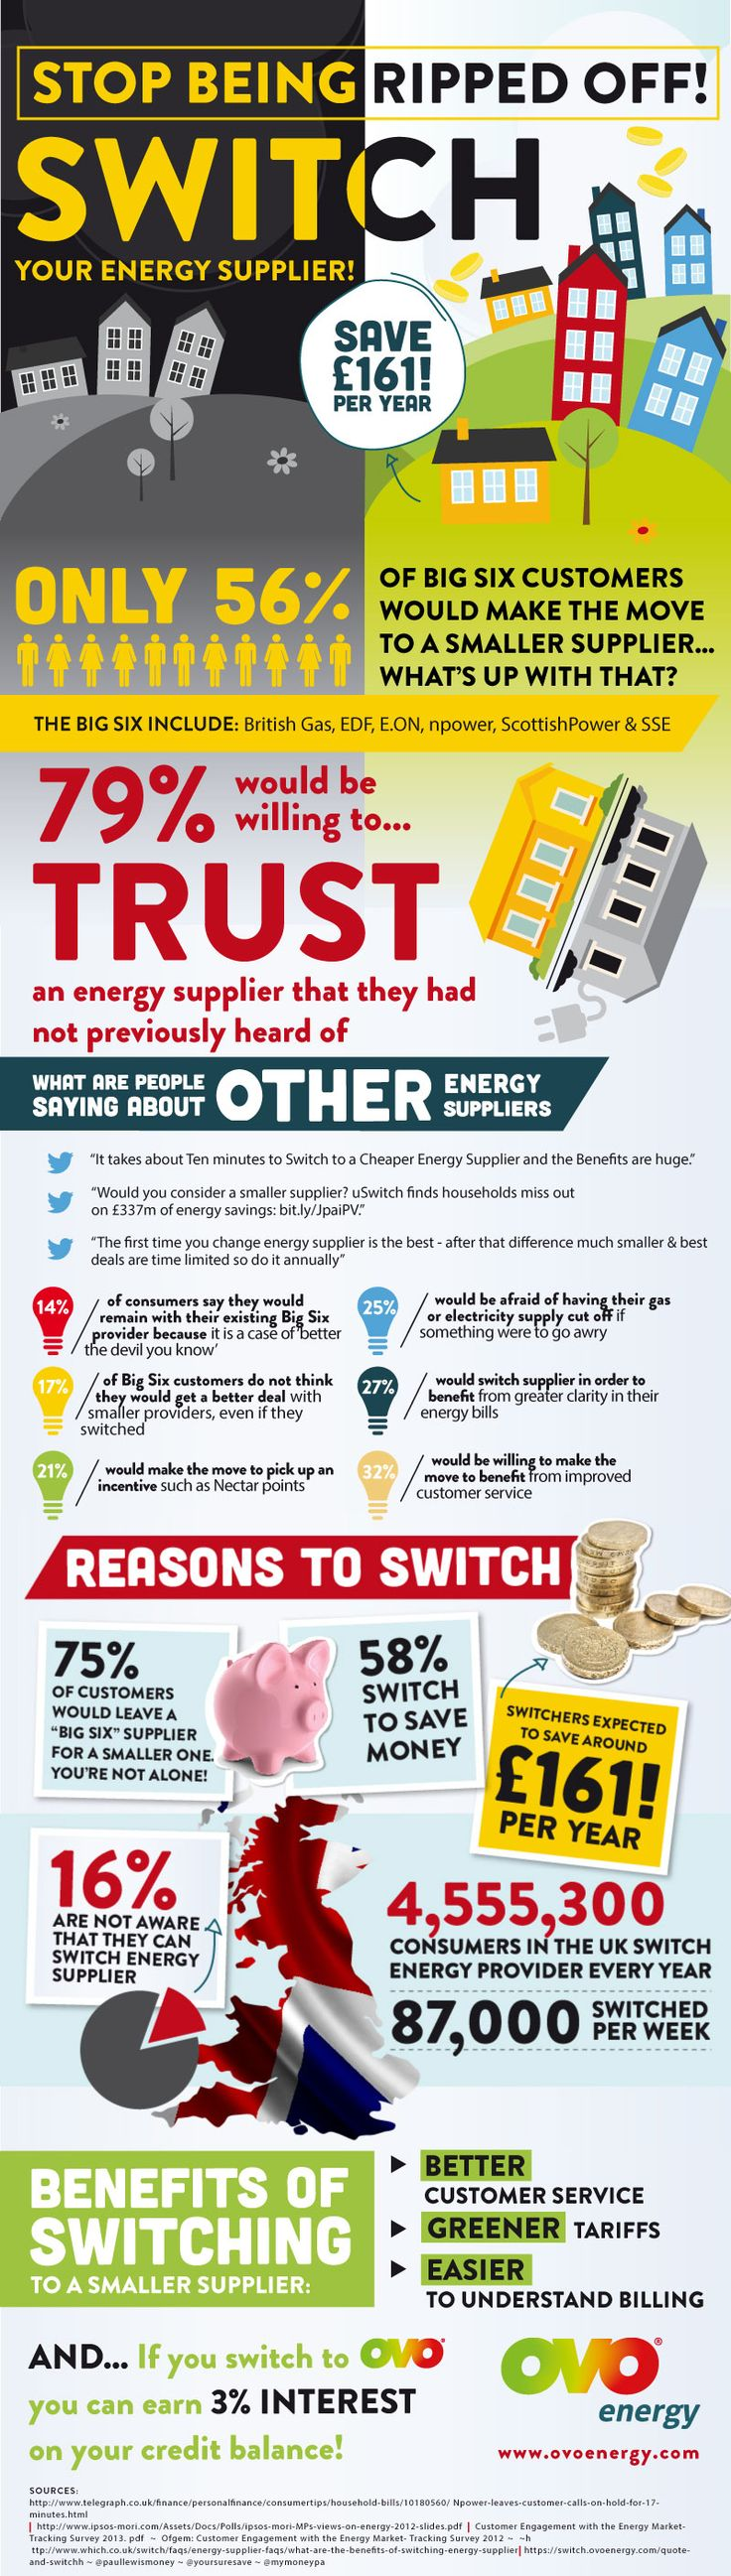 Stop being ripped off. Switch your energy supplier! [Infographic] - A Thrifty Mum